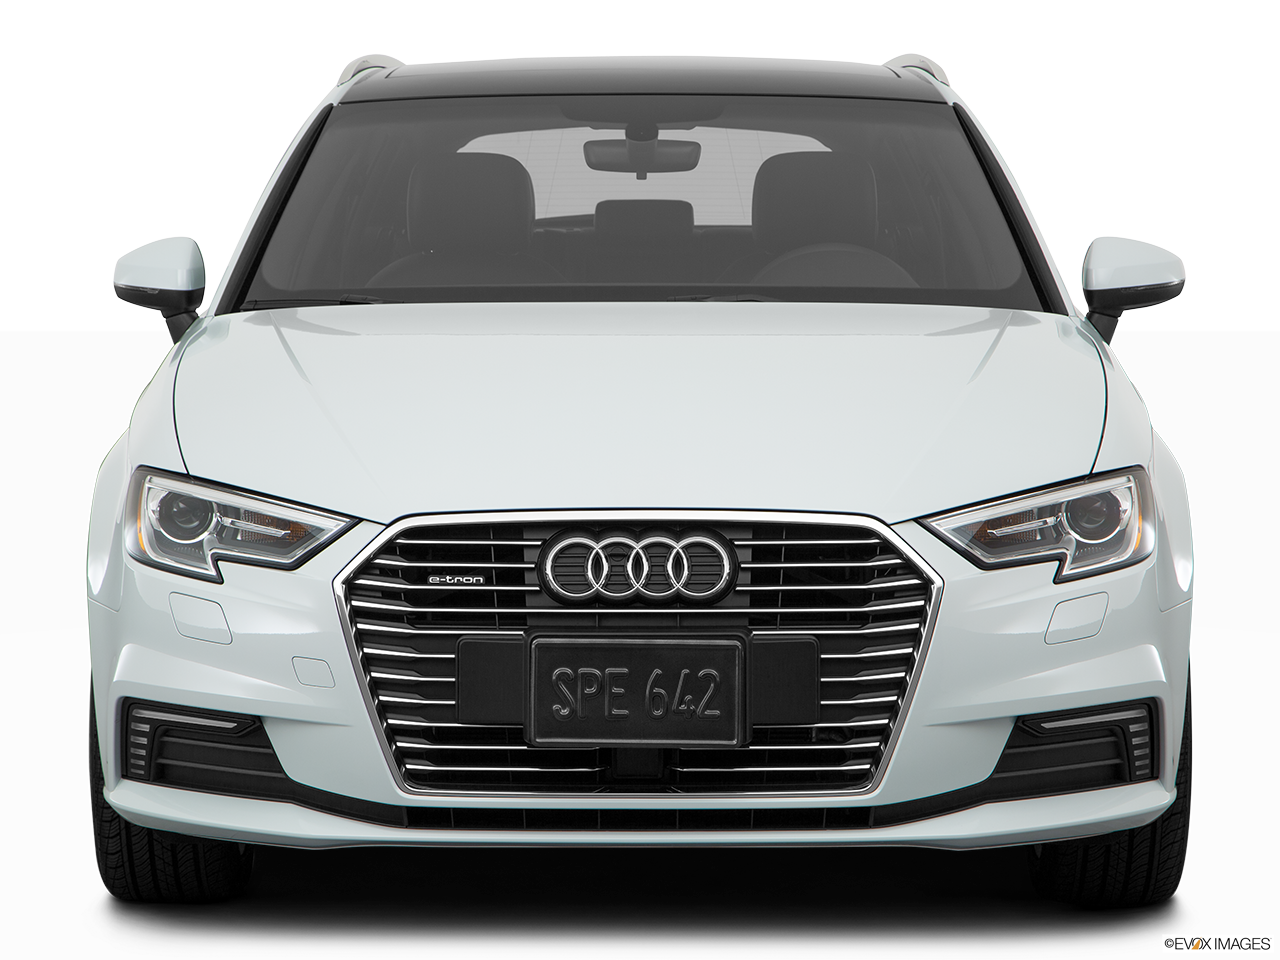 Front view of the Audi A3 e-tron